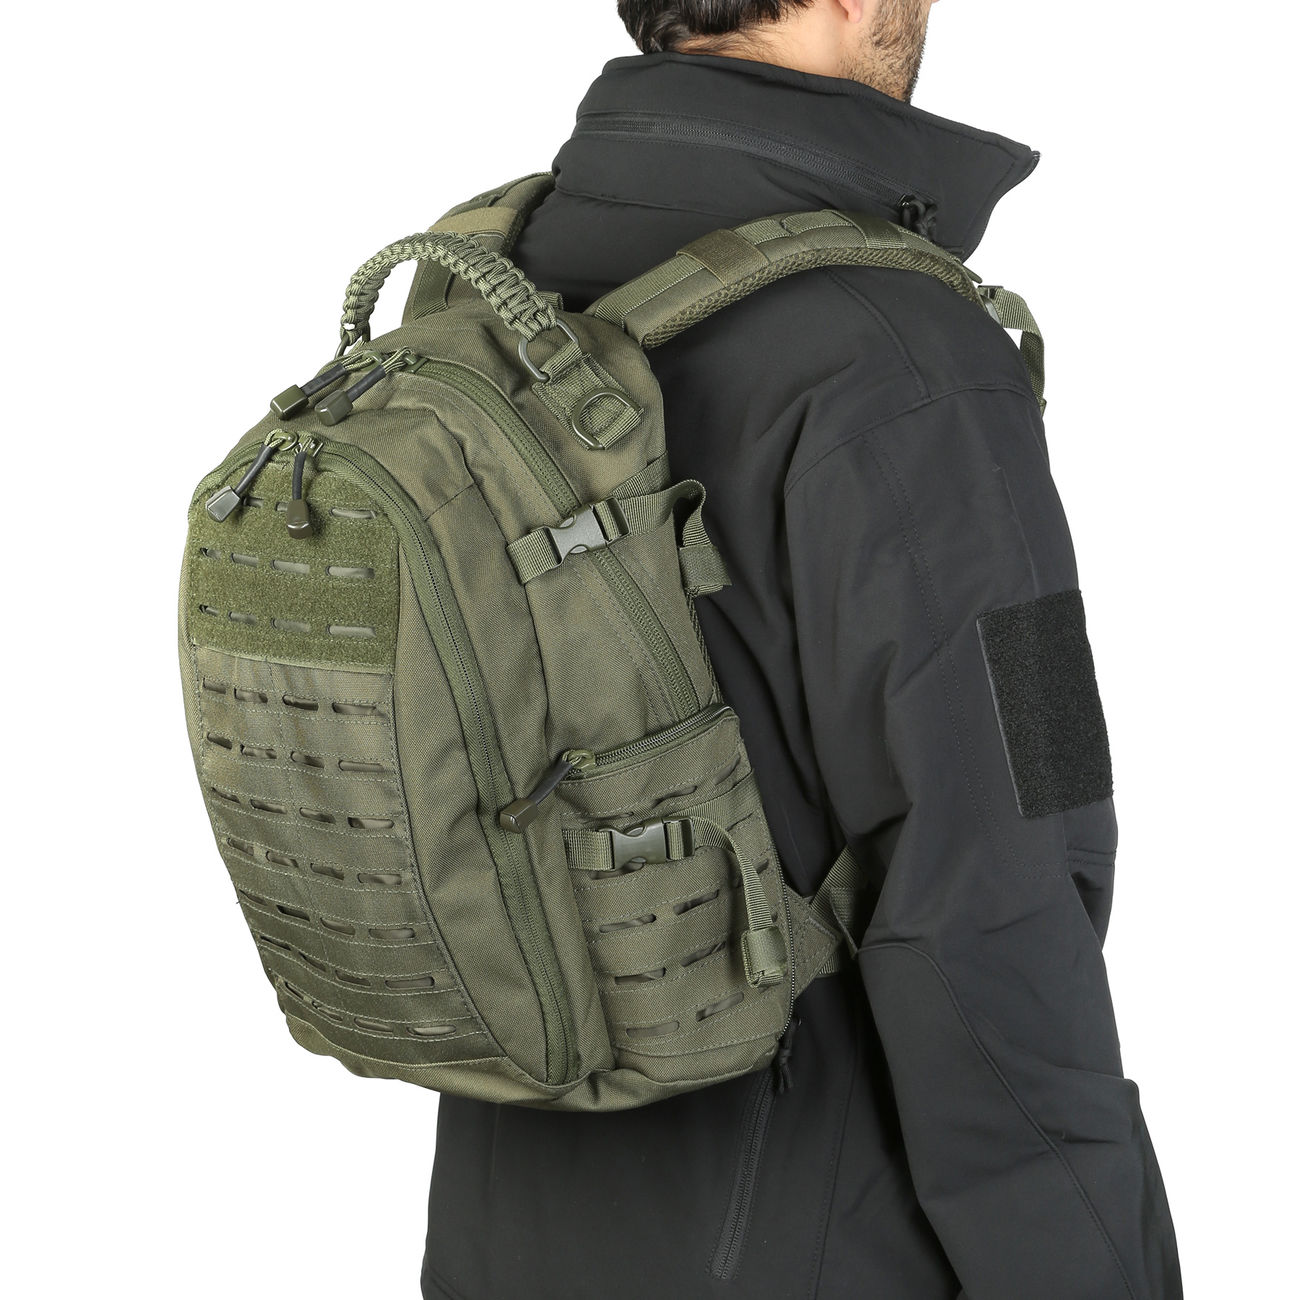 Mil-Tec Rucksack Mission Pack Laser Cut Small oliv 11